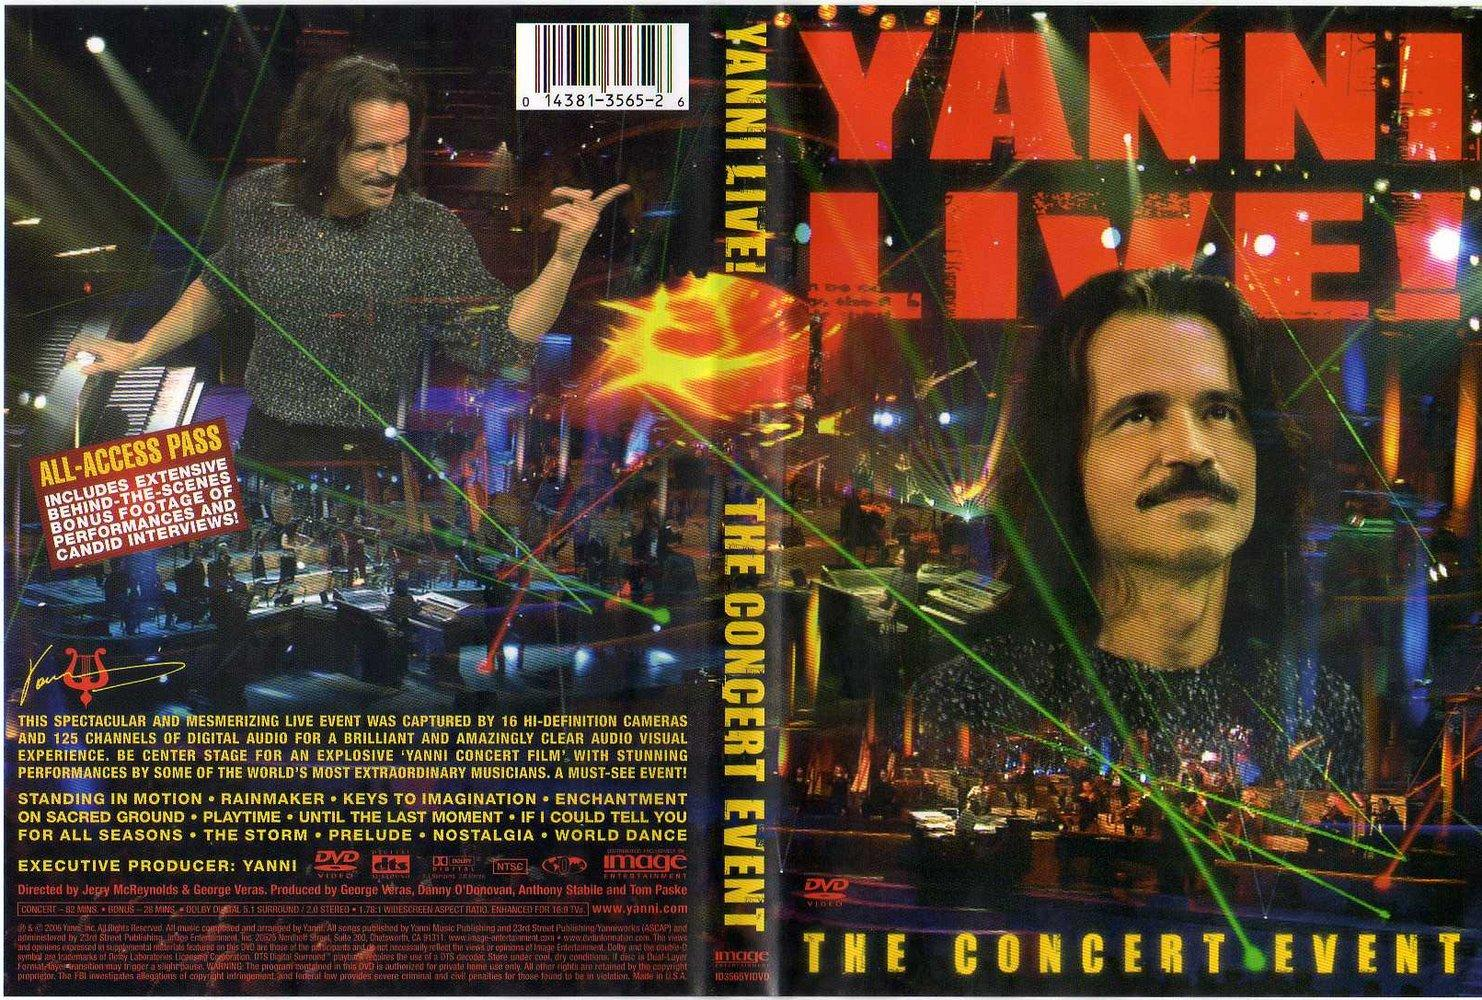 Show Yanni Tickets